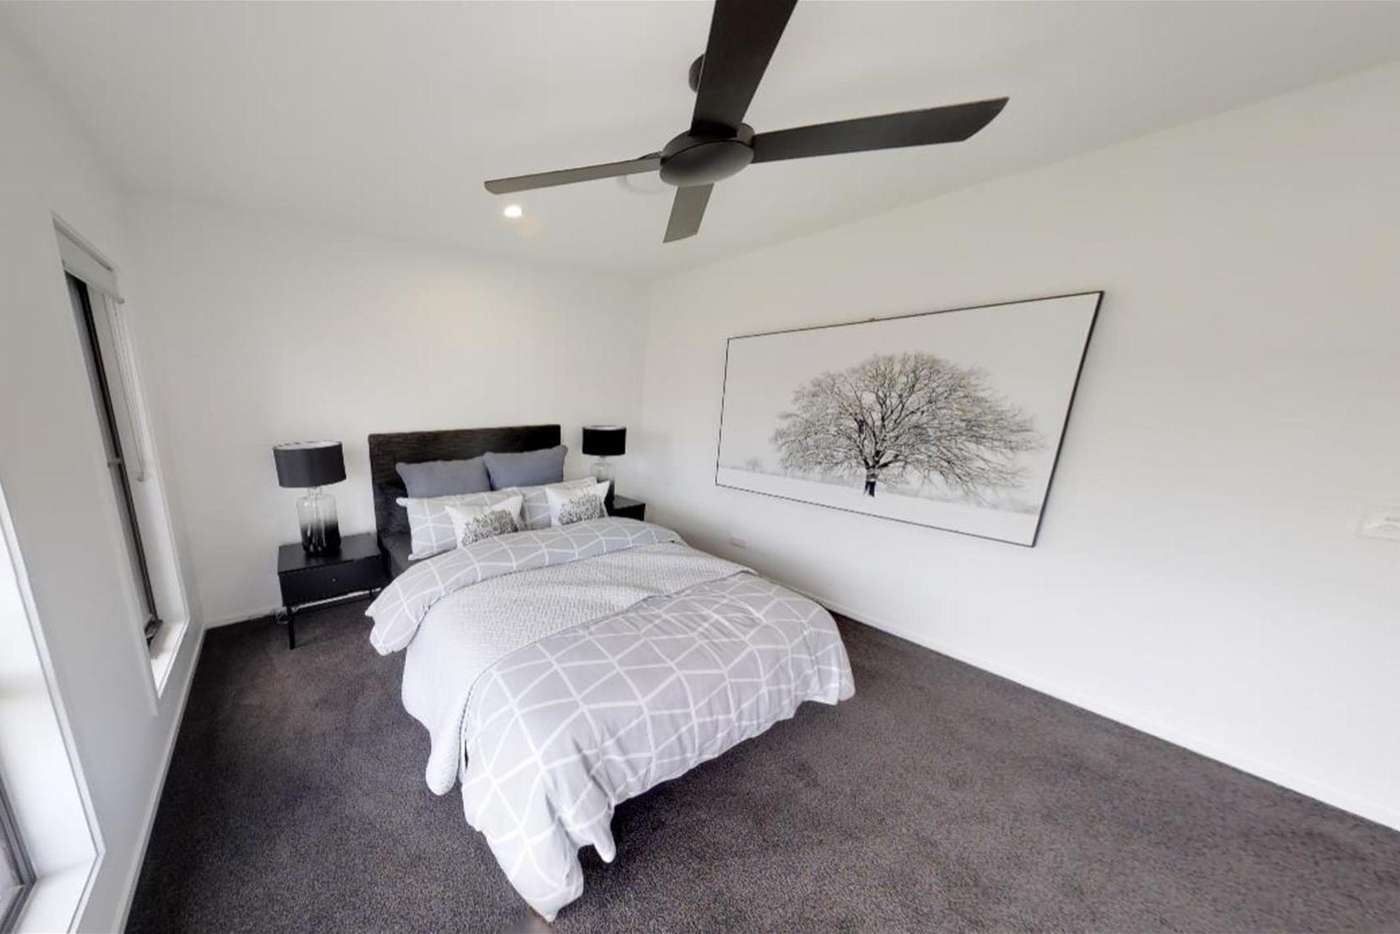 Seventh view of Homely house listing, Lot 7 Lillium Street, Rochedale QLD 4123